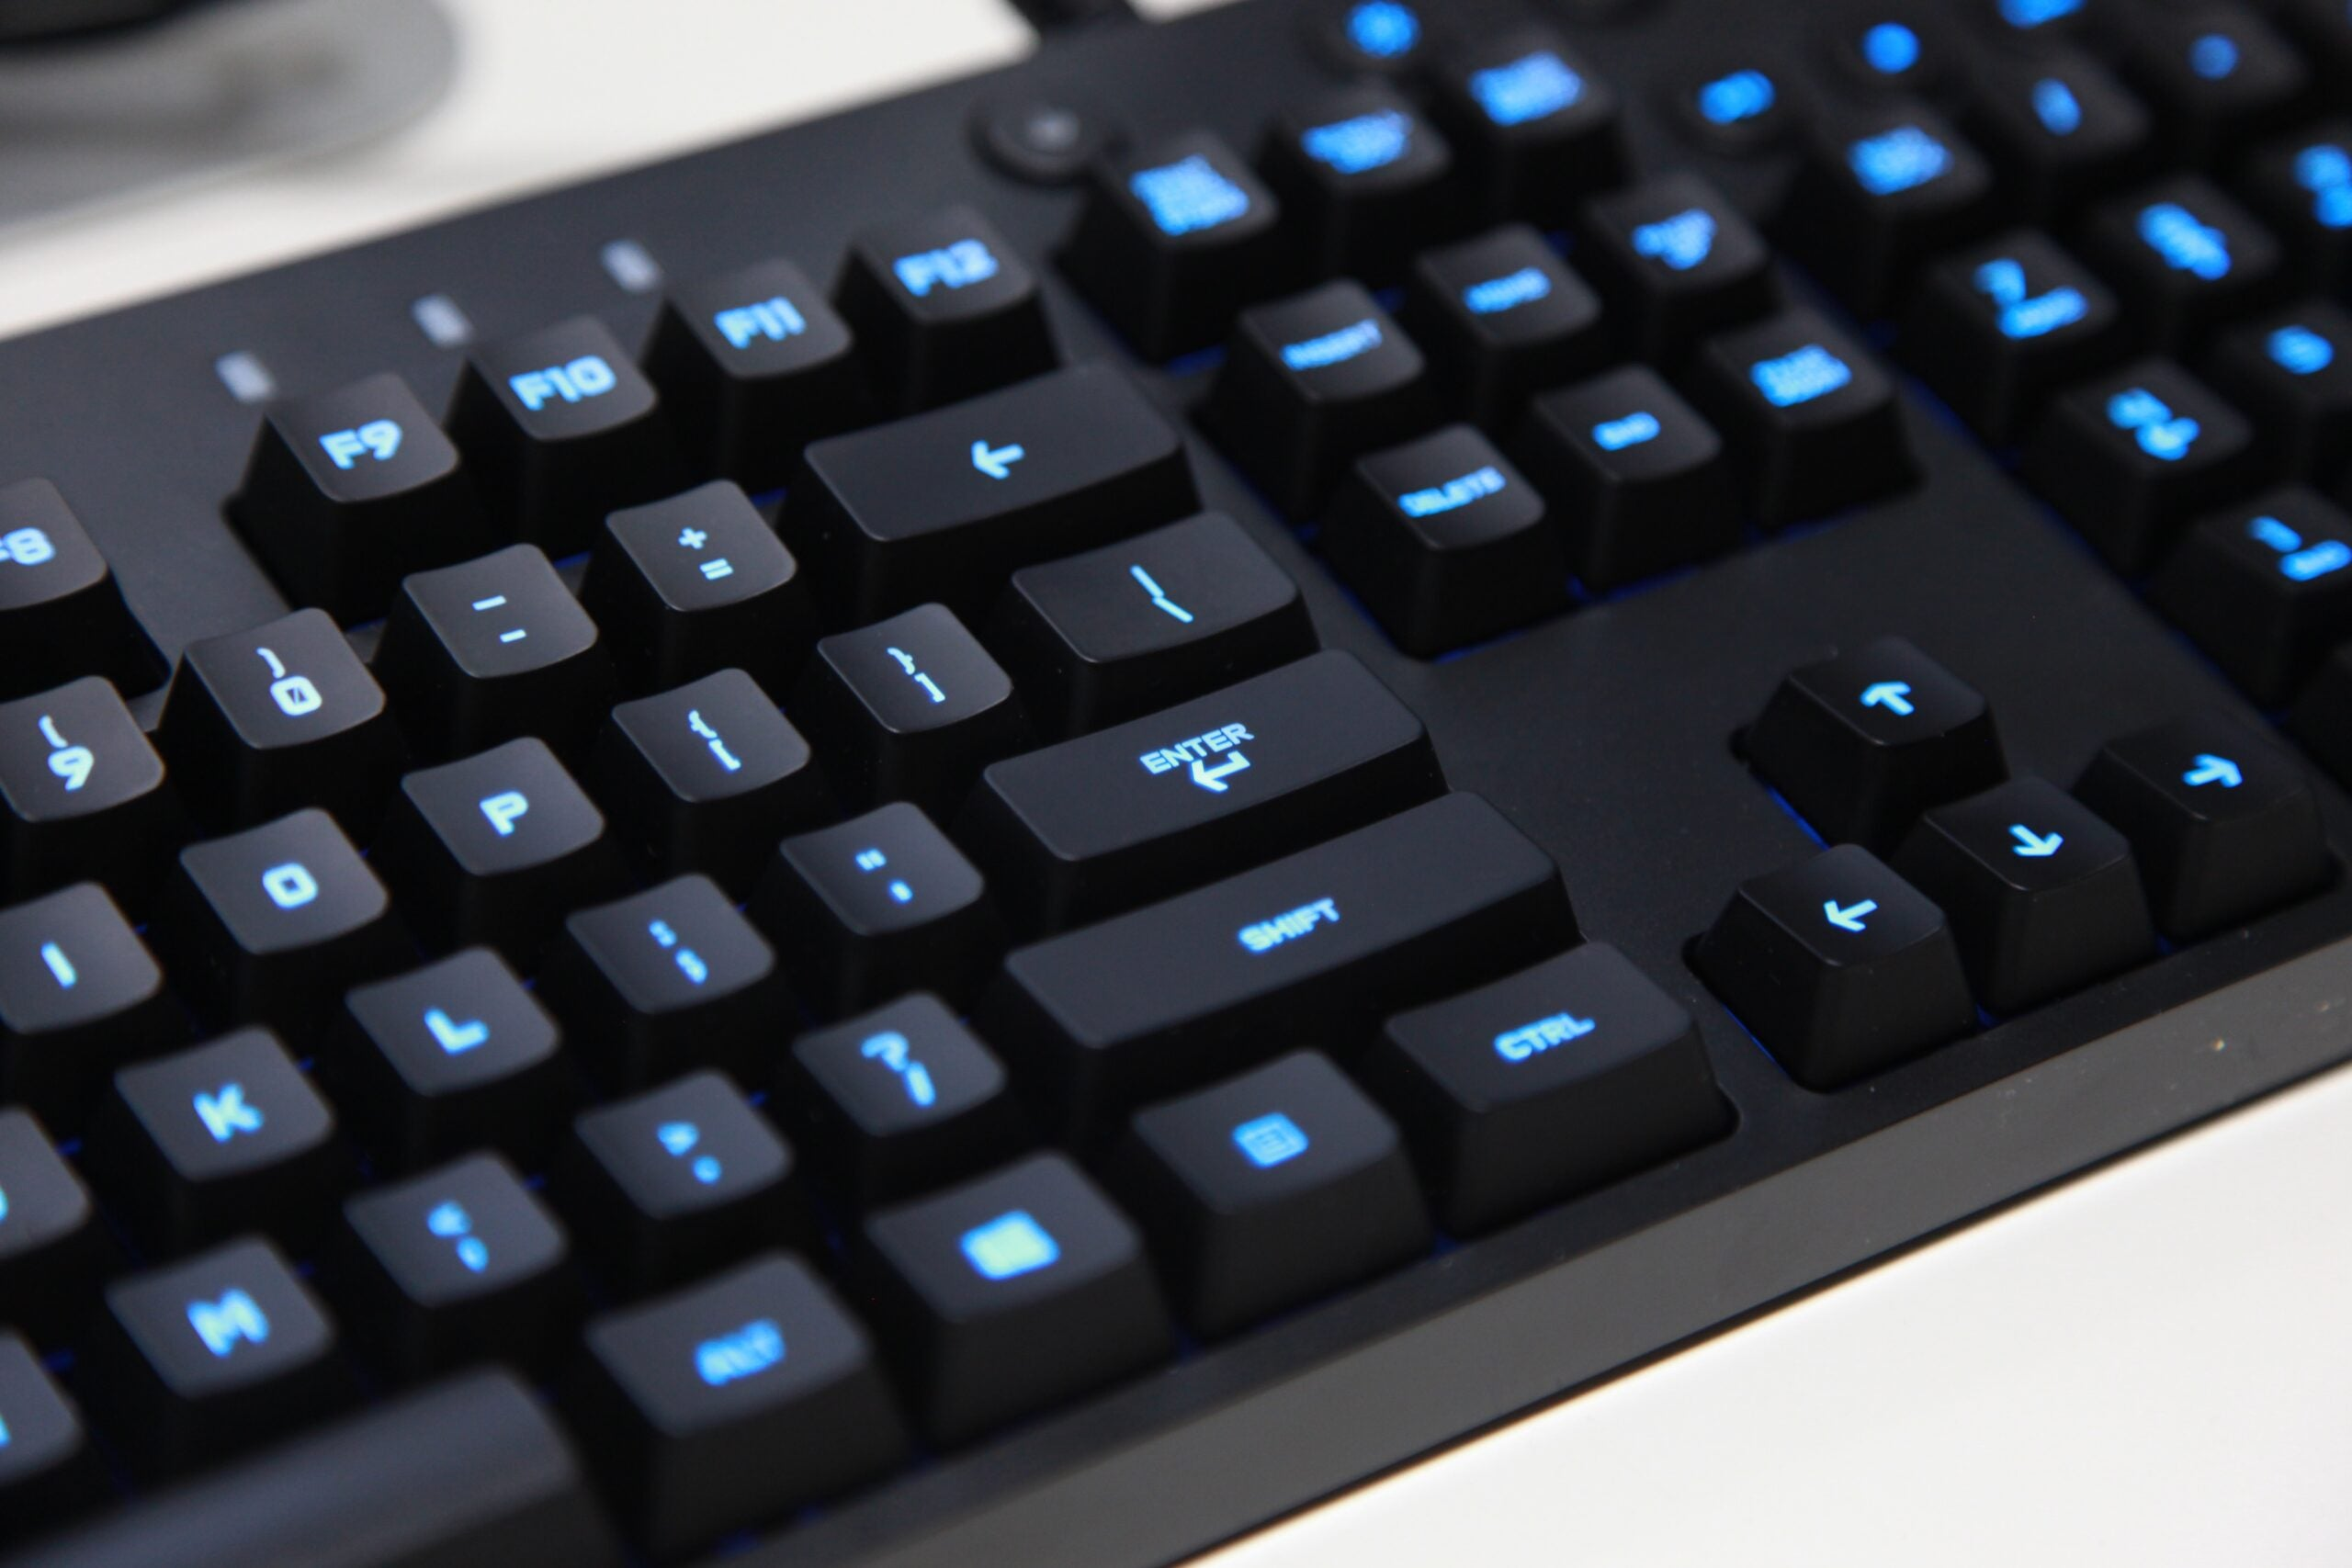 Logitech's G810 Keyboard Is The Gaming Keyboard You'll Want To Bring To Work